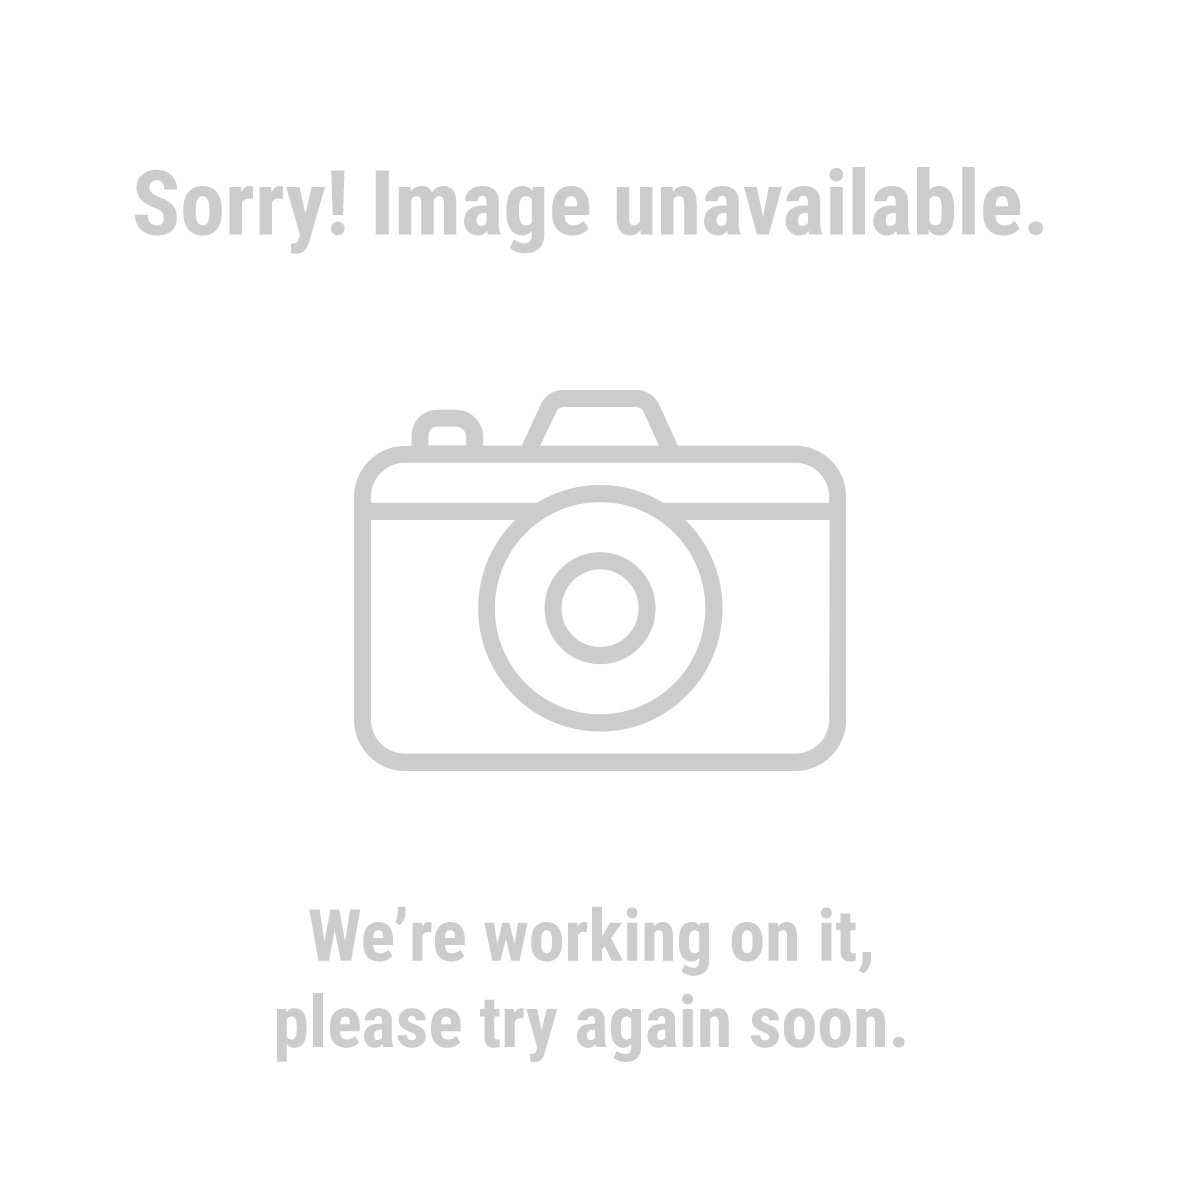 NiteIze Hardware 65655 Figure 9 Rope Tightener, Large with Camo Rope, Black Finish